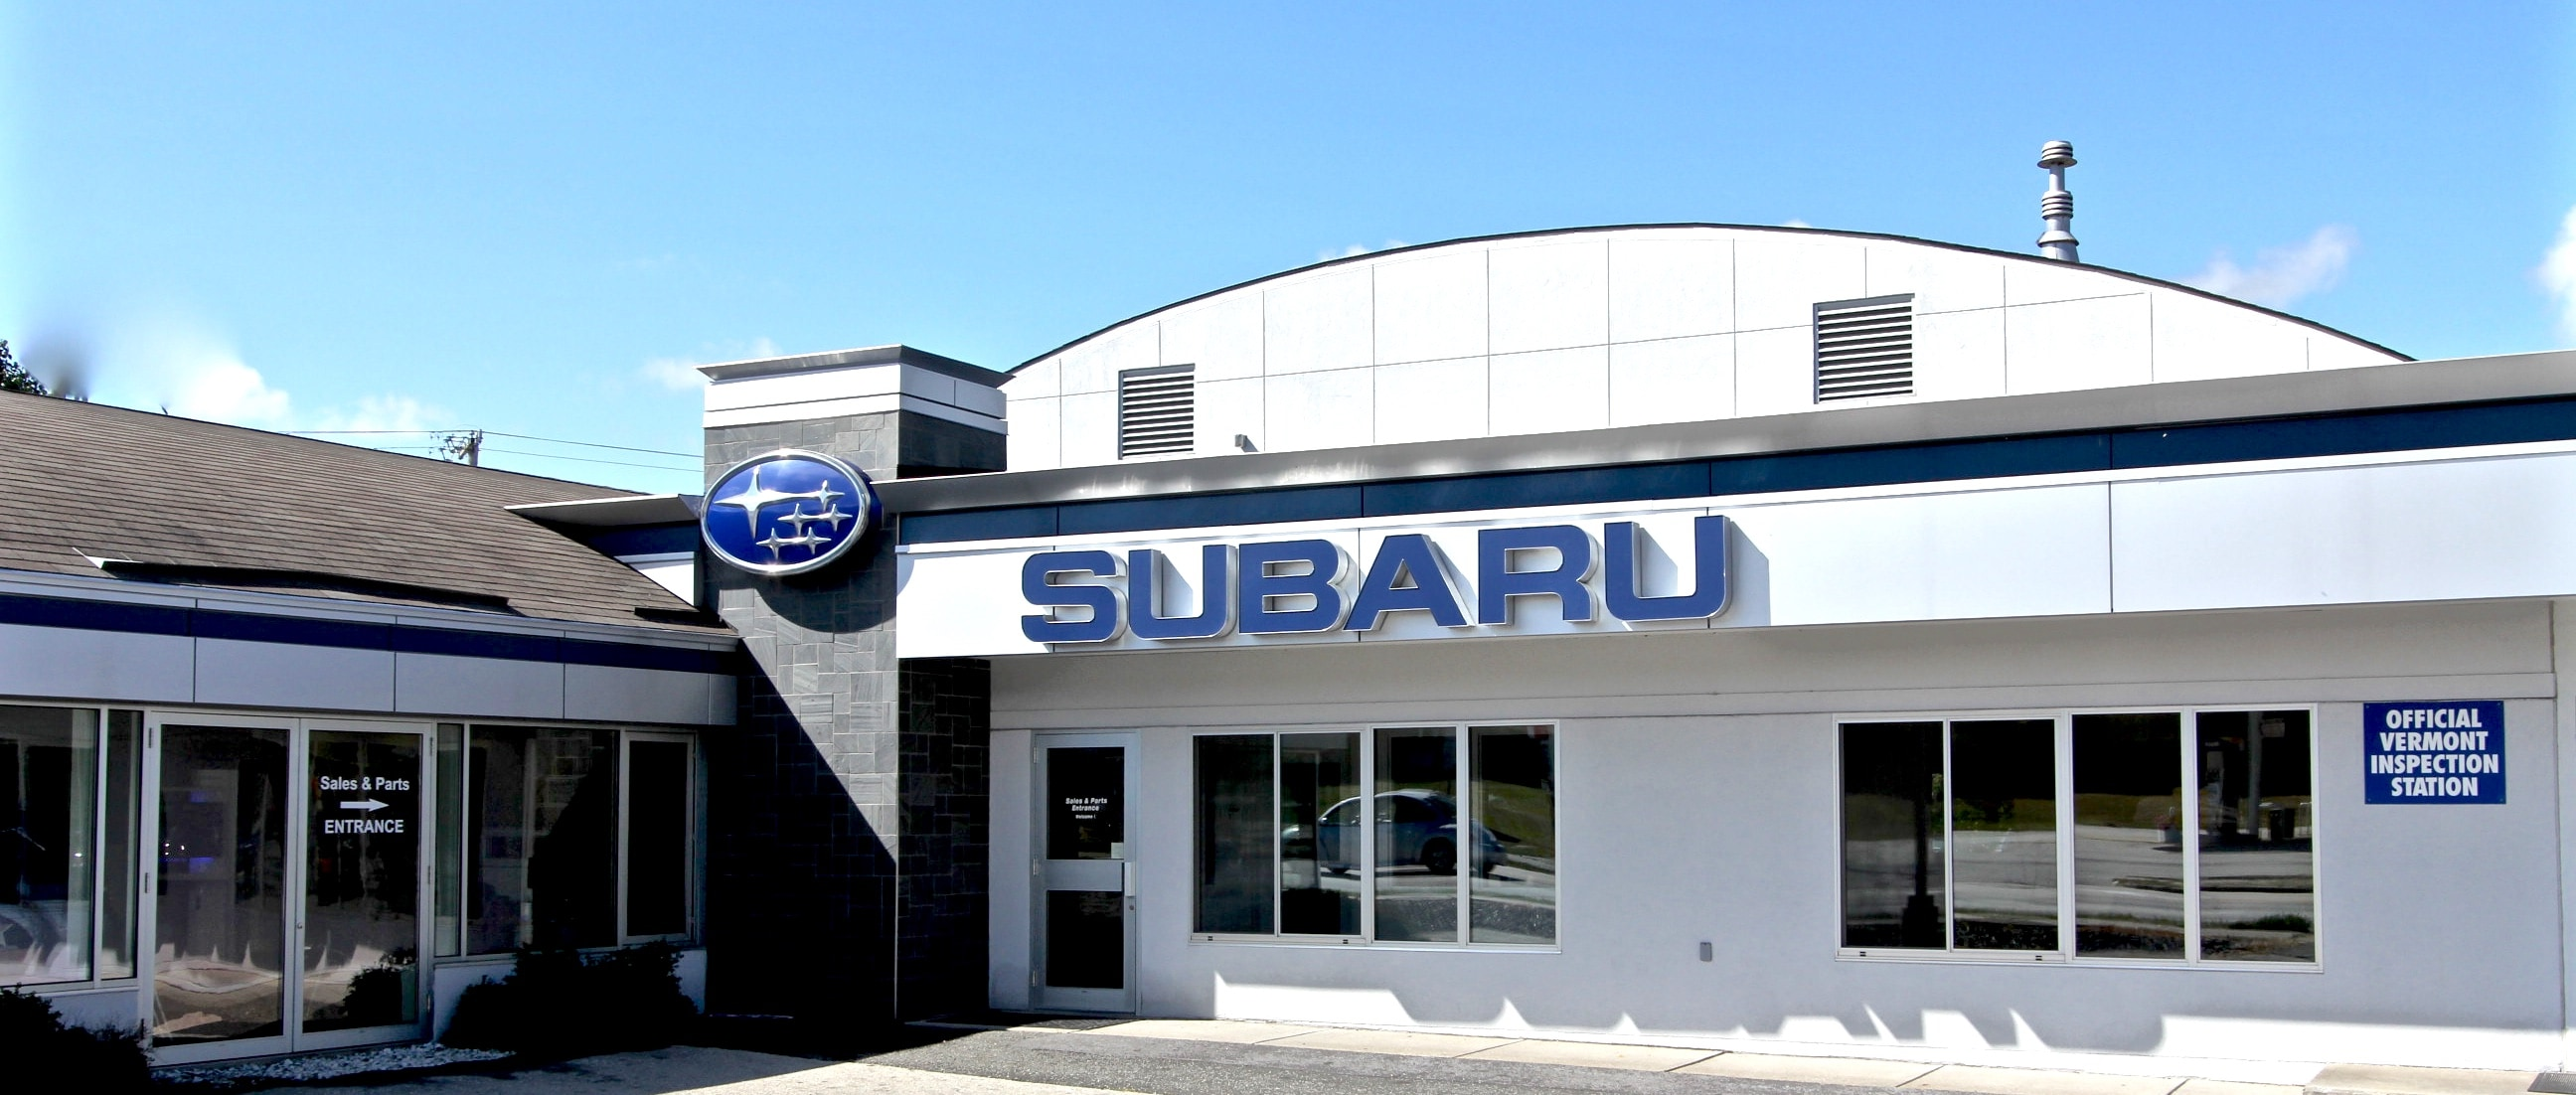 directions to rutland subaru in rutland vt. Black Bedroom Furniture Sets. Home Design Ideas